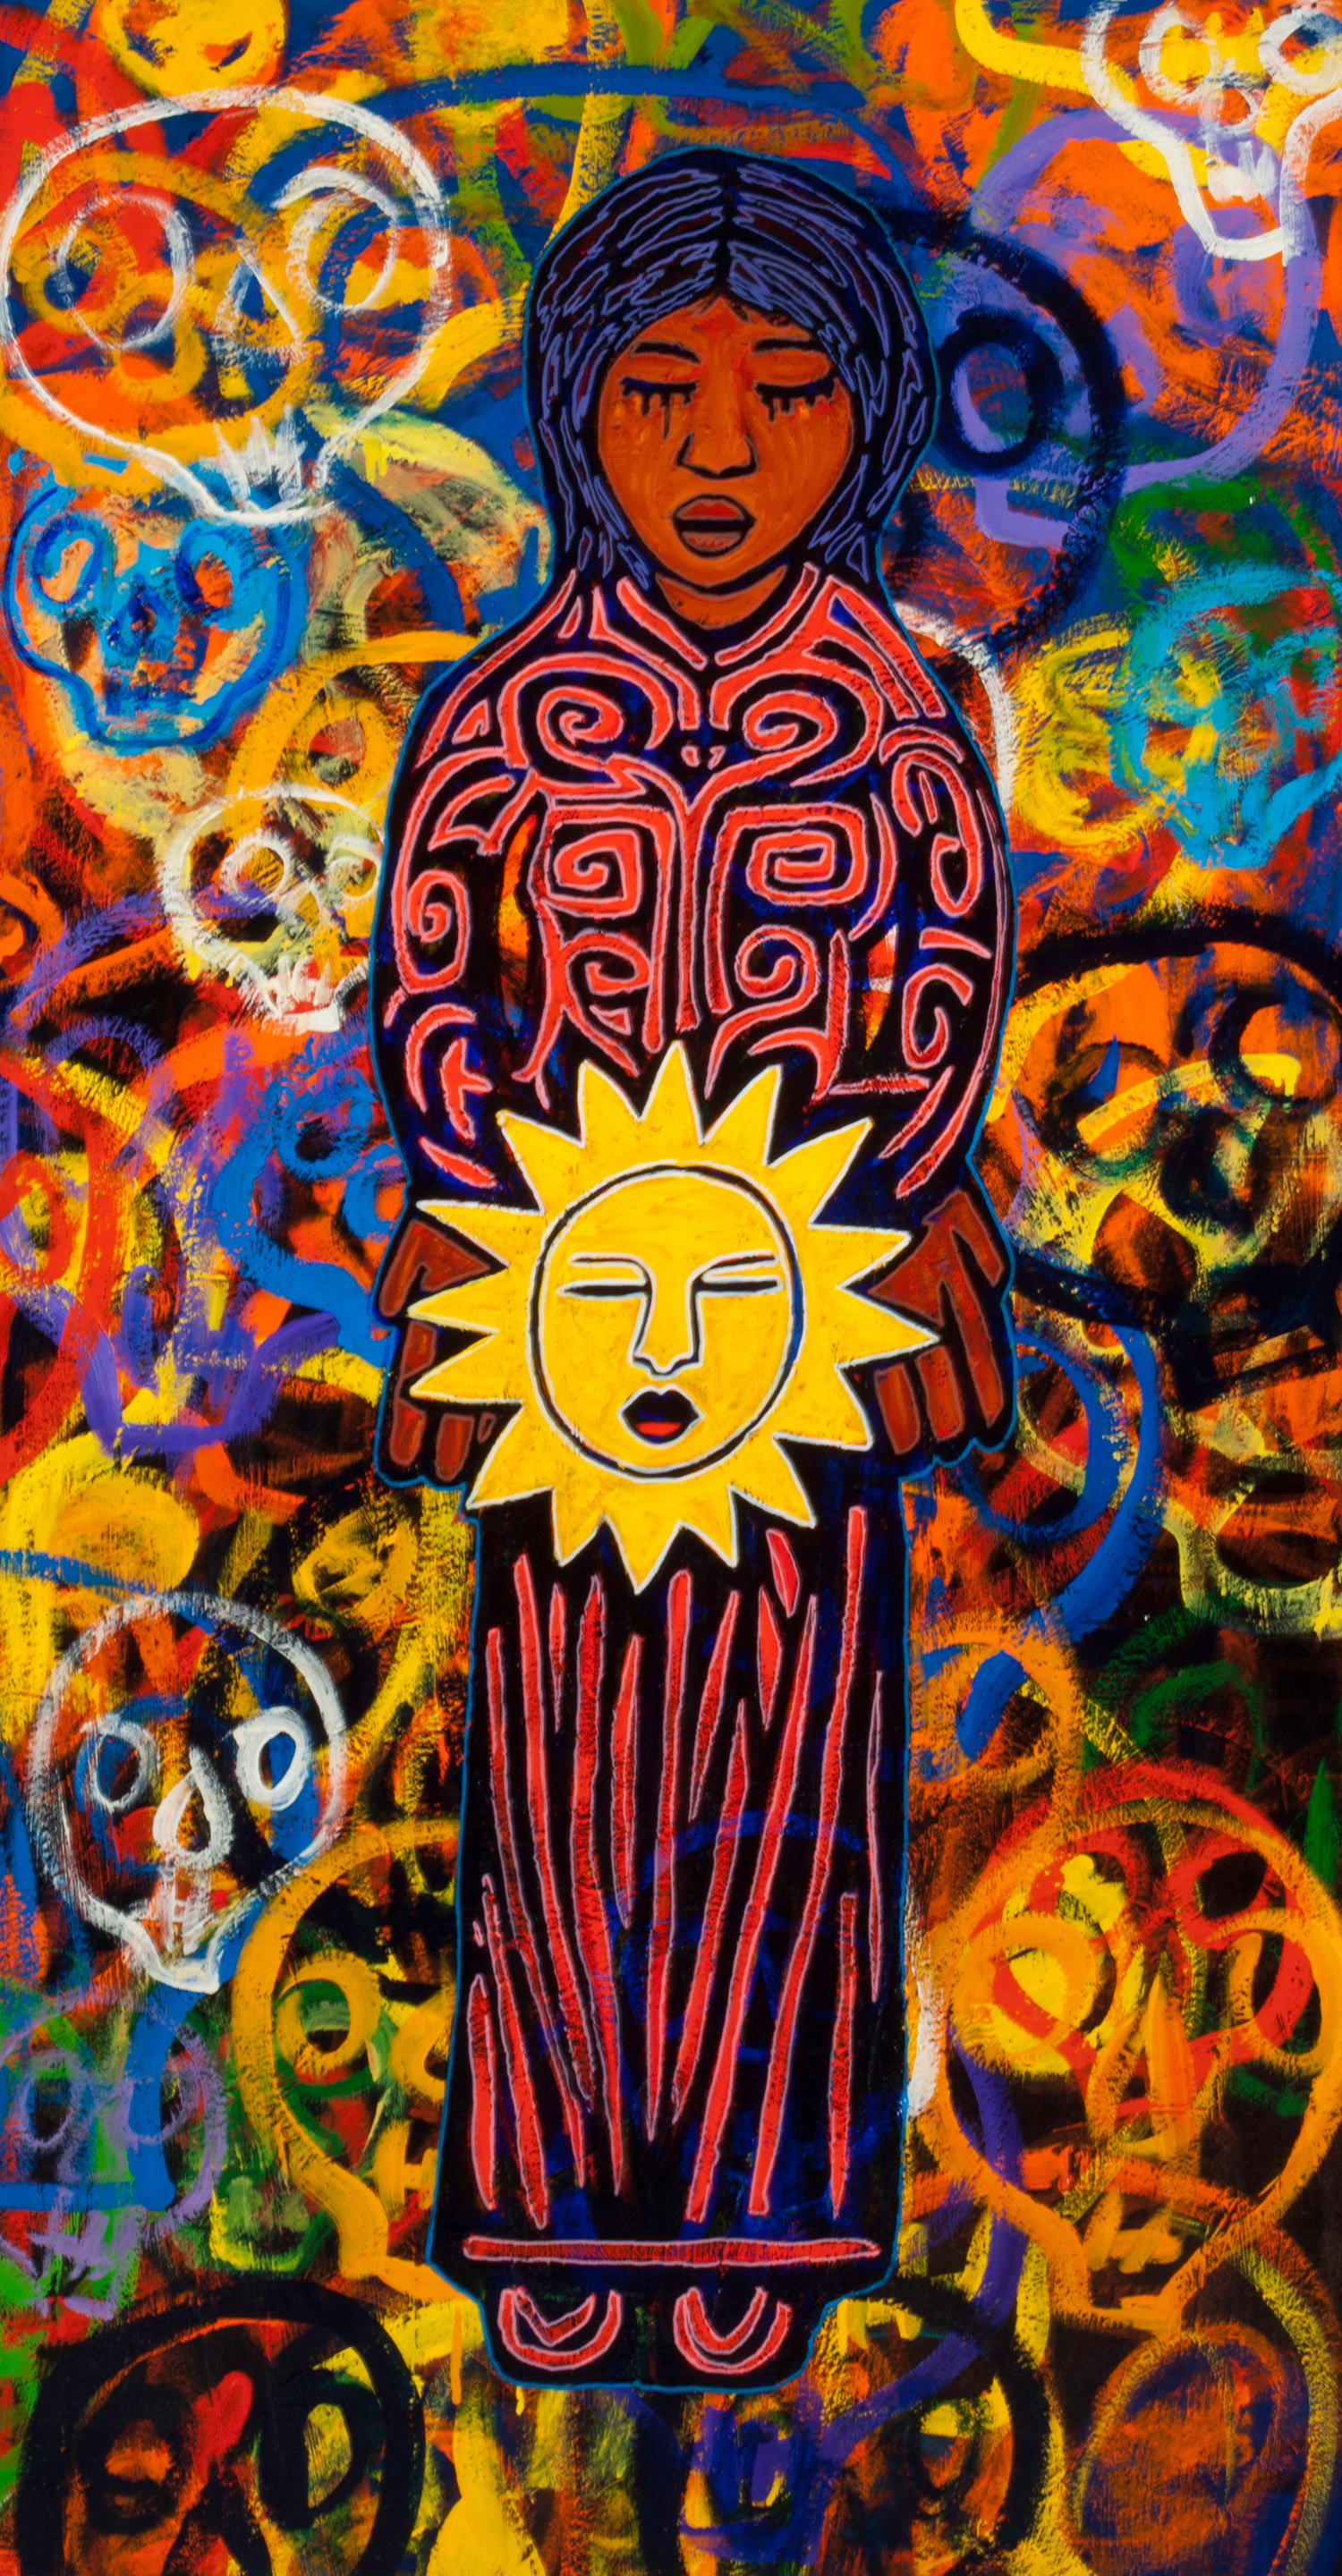 madre sol, 2012, 33x54